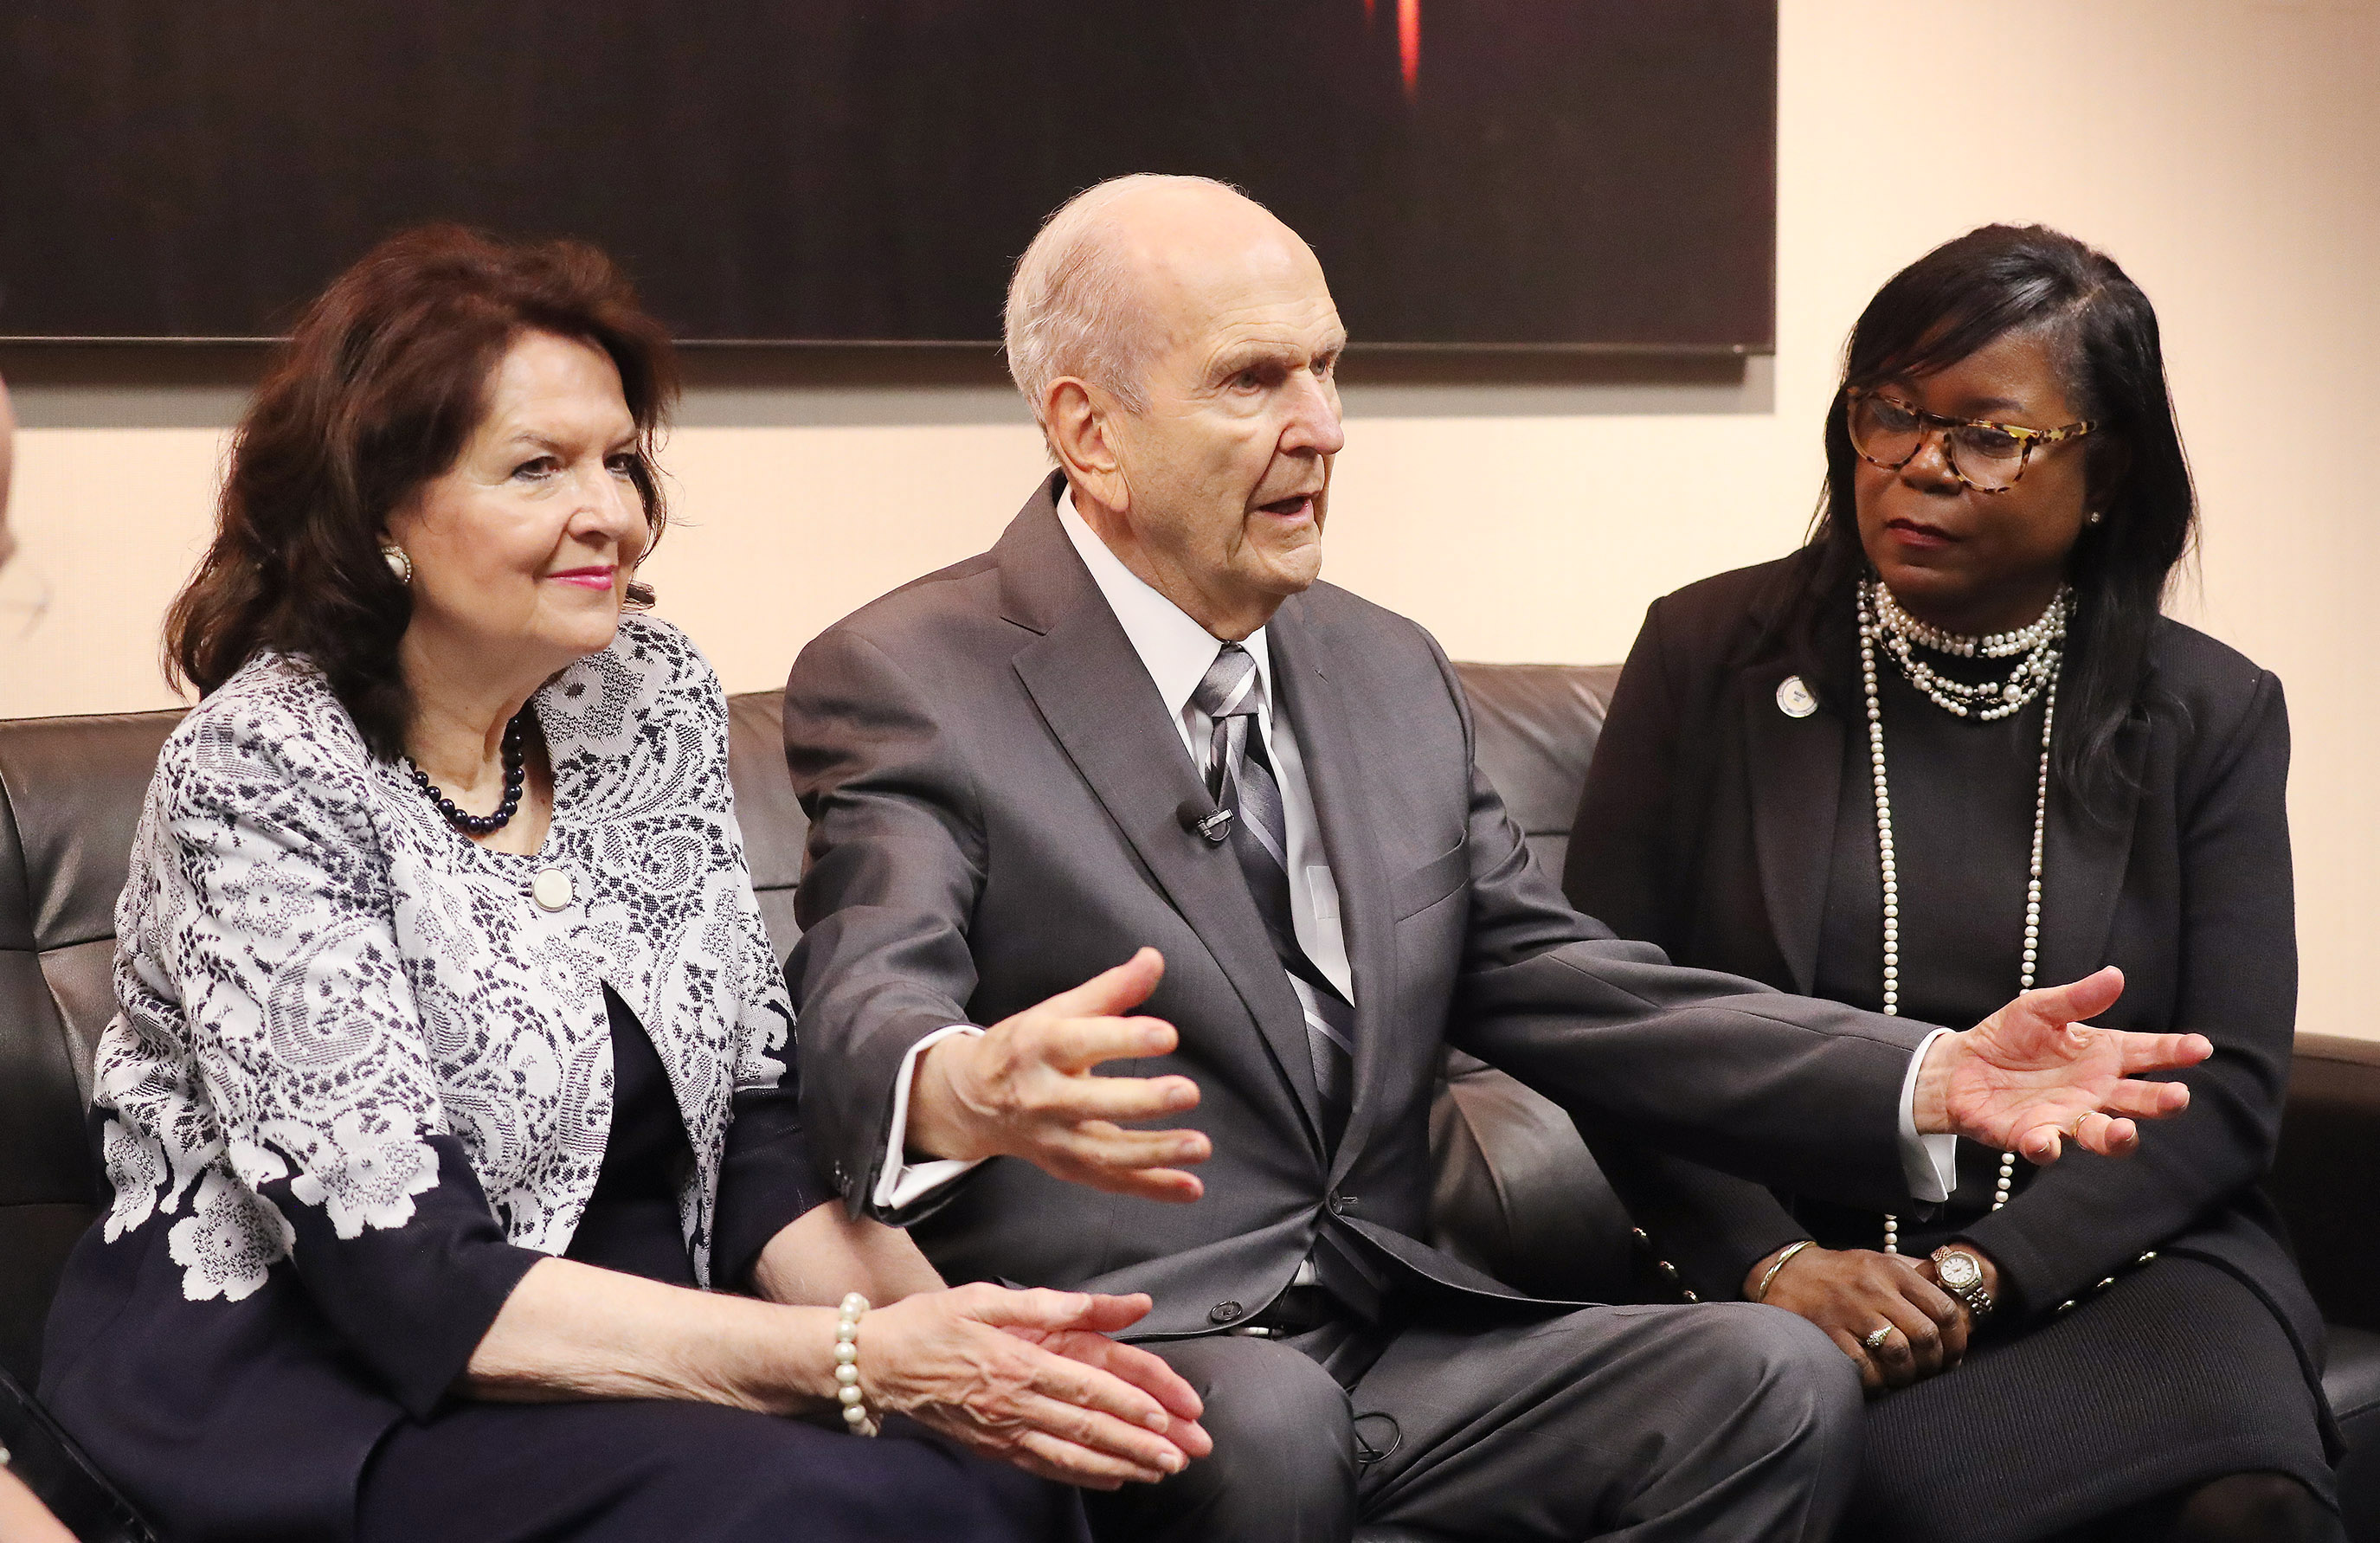 President Russell M. Nelson of The Church of Jesus Christ of Latter-day Saints tells a story of his flying experience in Alaska with his wife Sister Wendy Nelson and Reverend Theresa Deer at the 110th annual national convention for the National Association for the Advancement of Colored People in Detroit on Sunday, July 21, 2019.